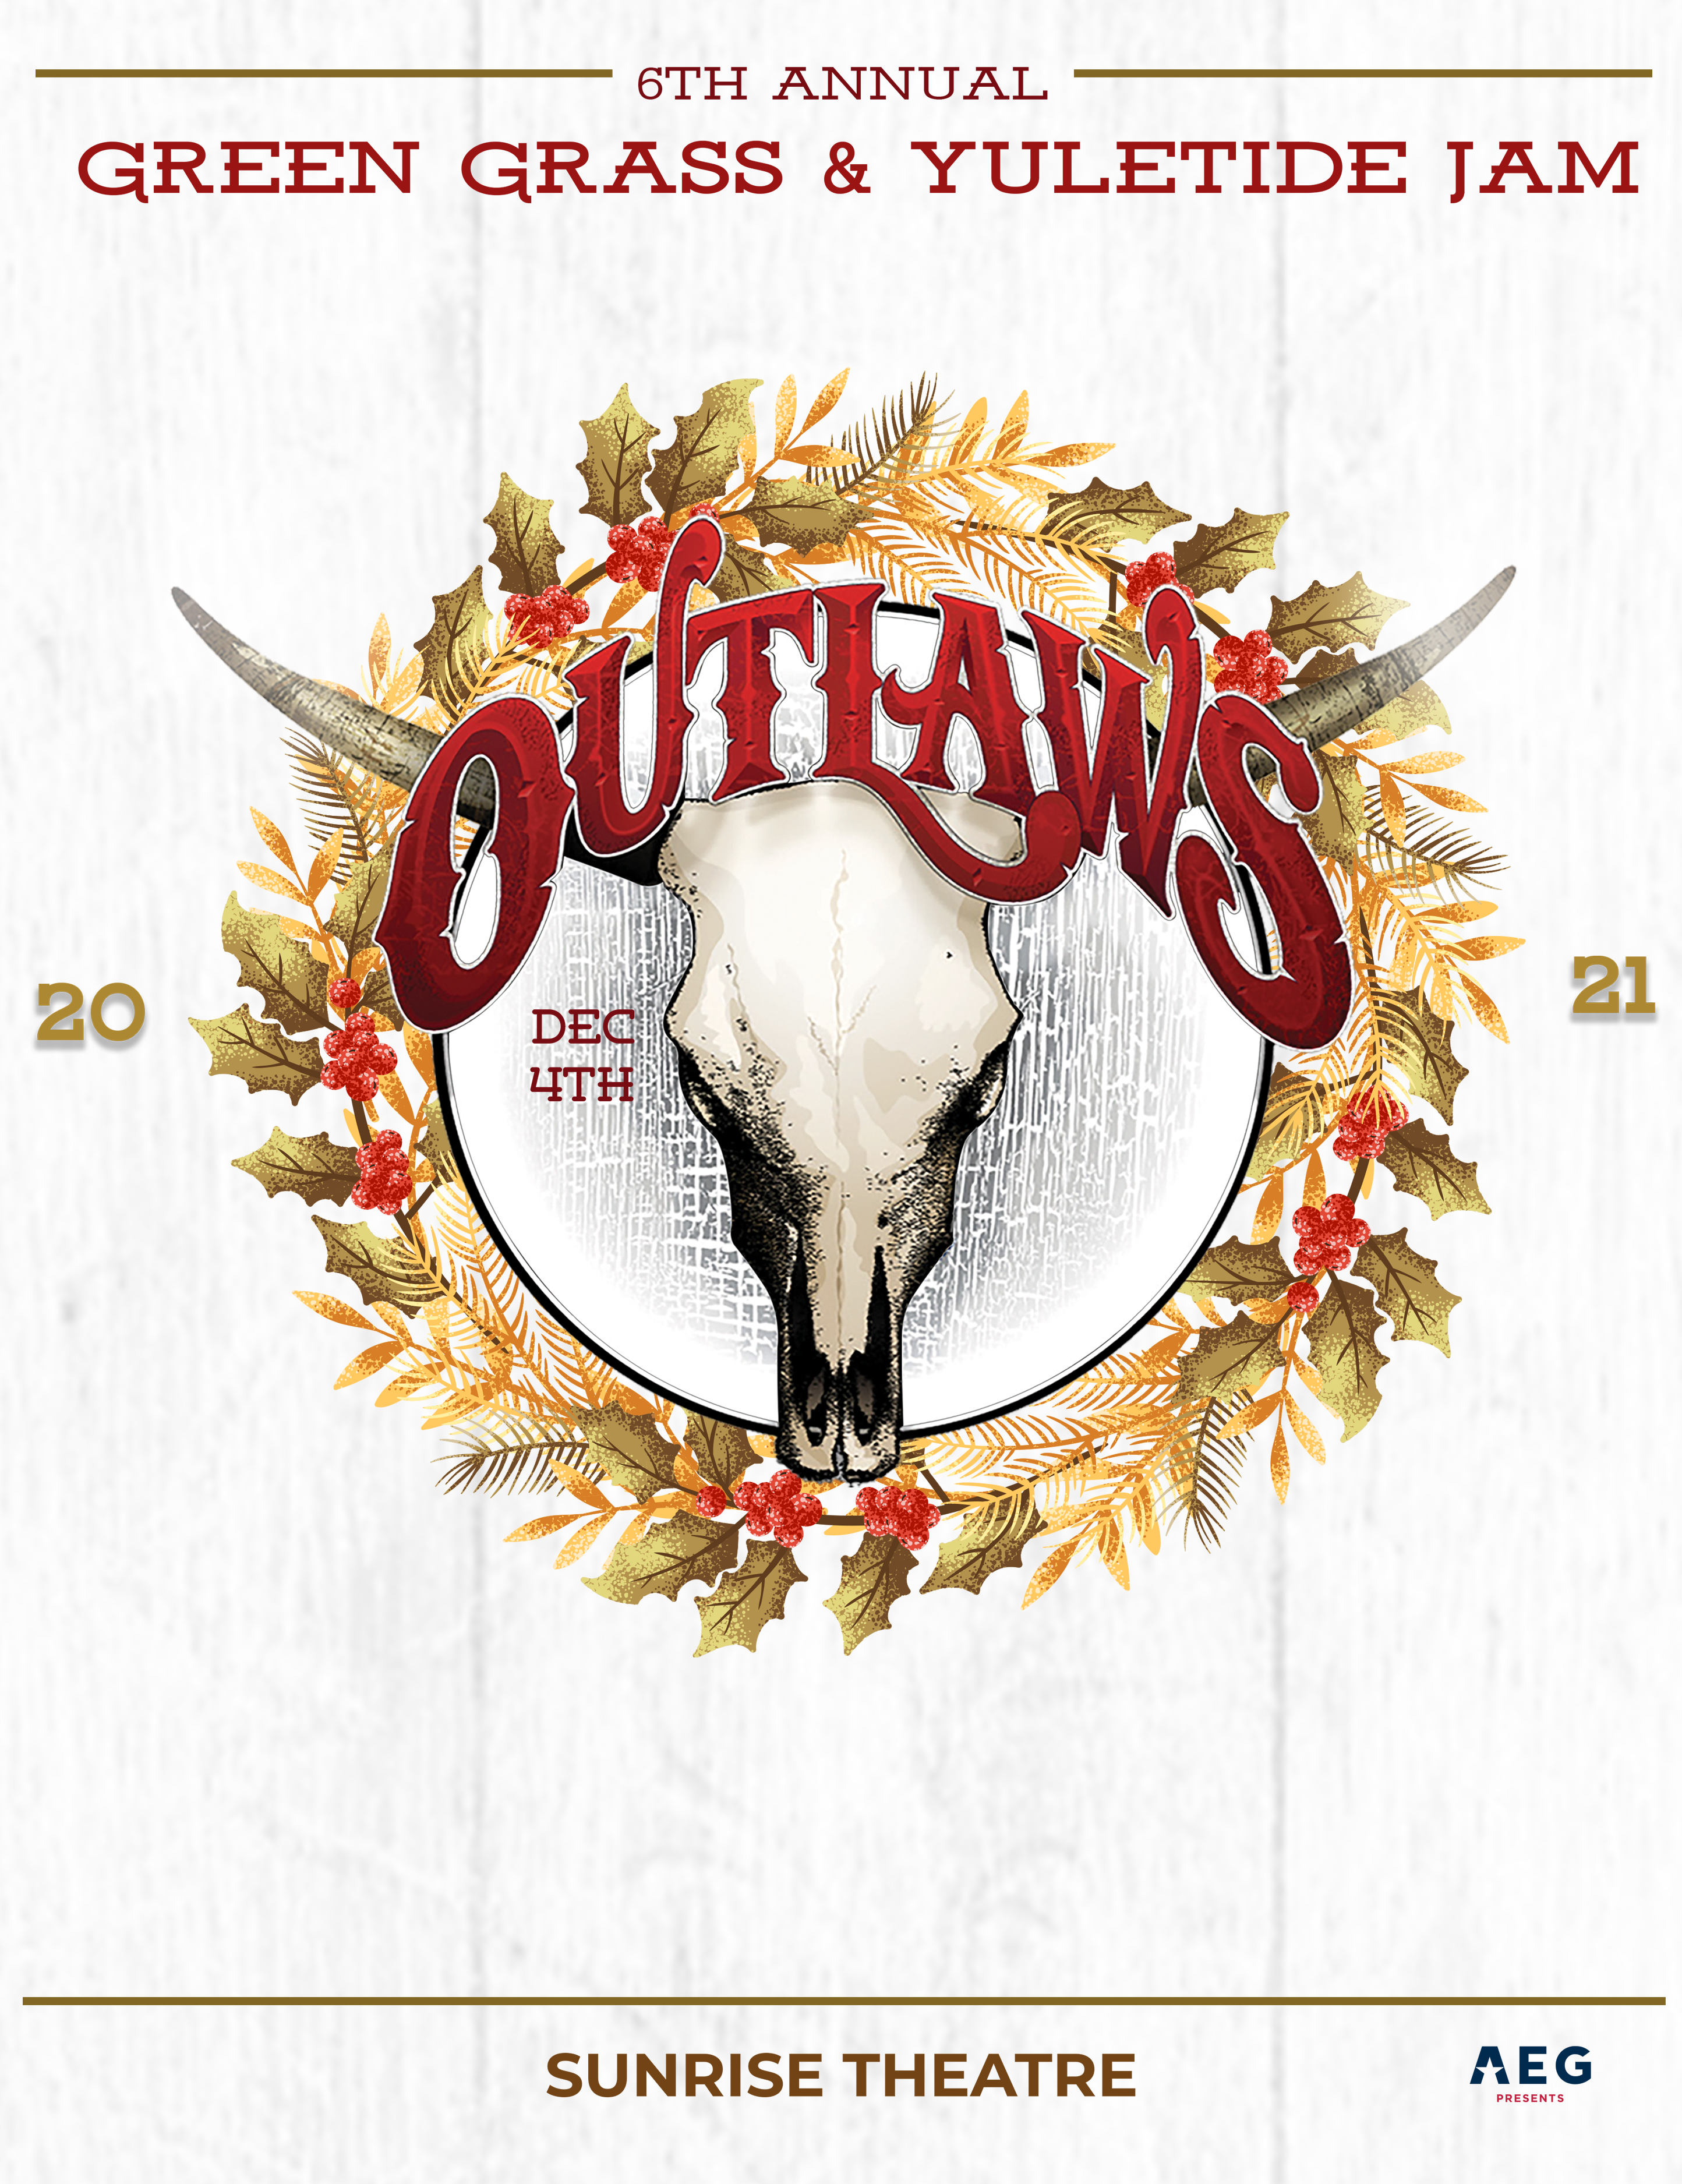 Sunrise Theatre and AEG Presents: The Outlaws With Pat Travers